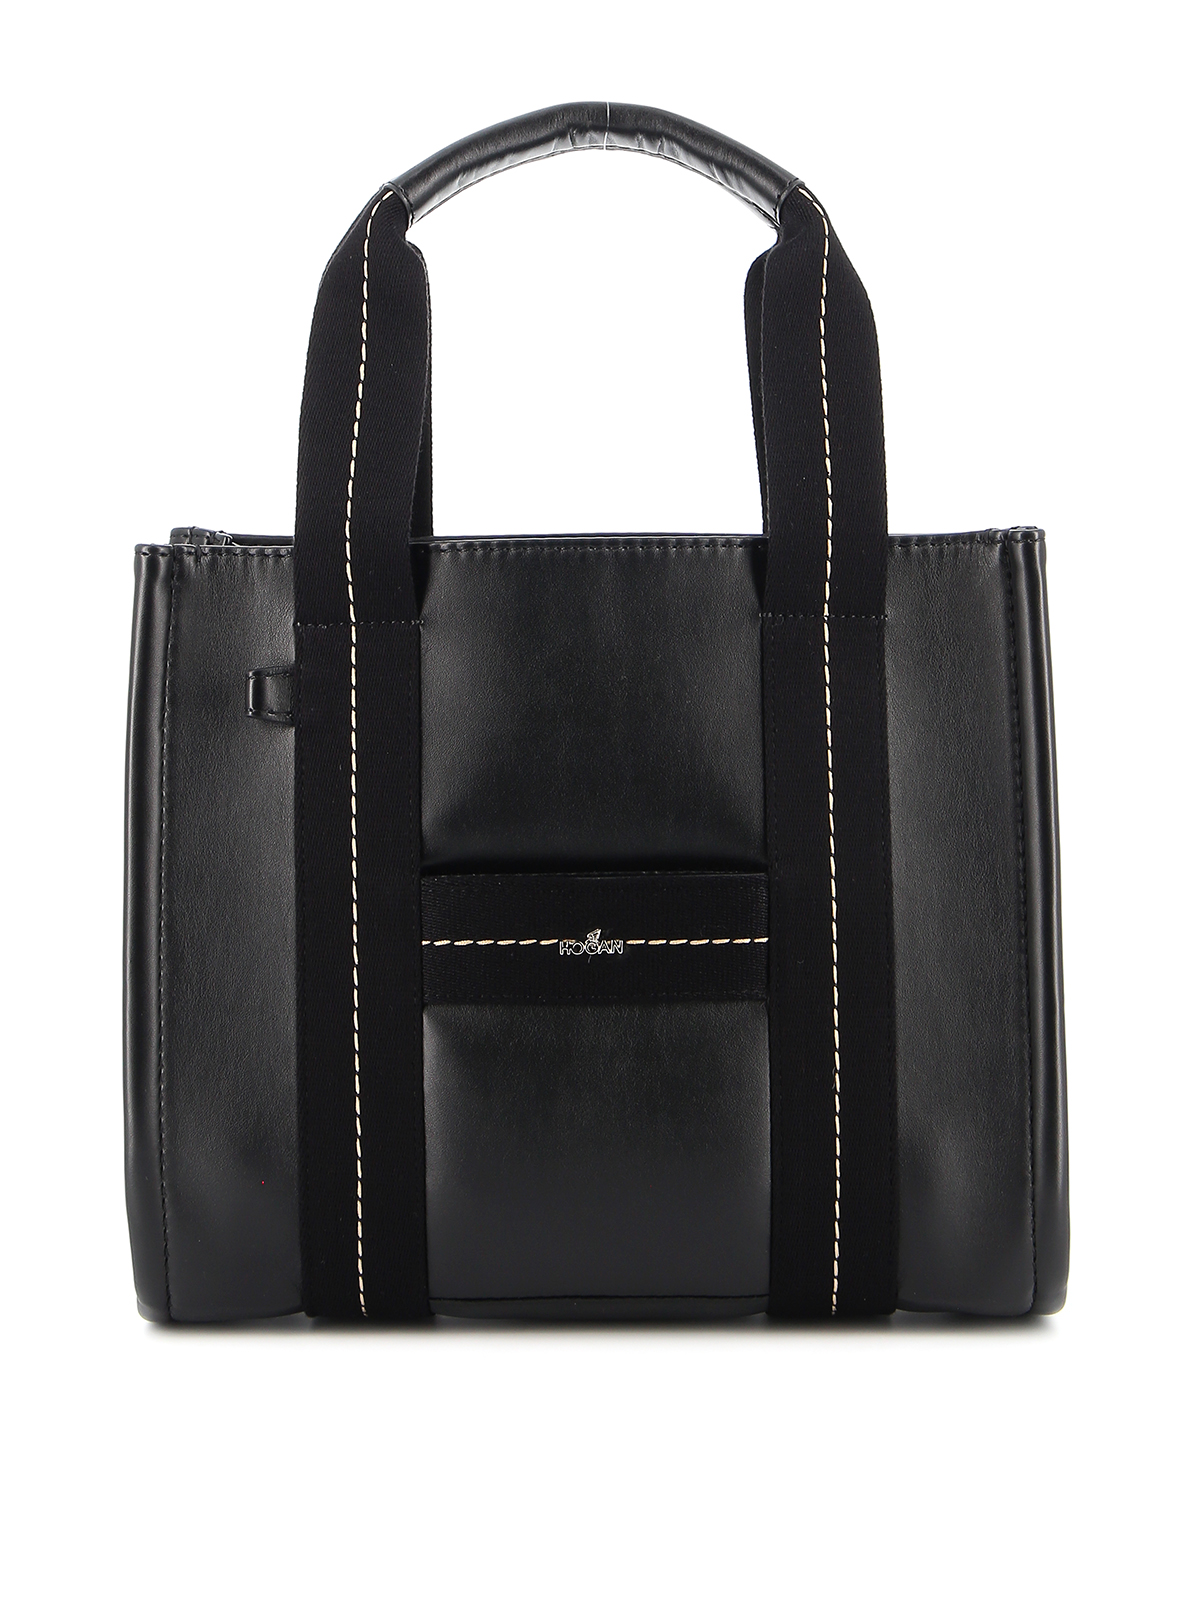 Hogan SMOOTH LEATHER TOTE BAG